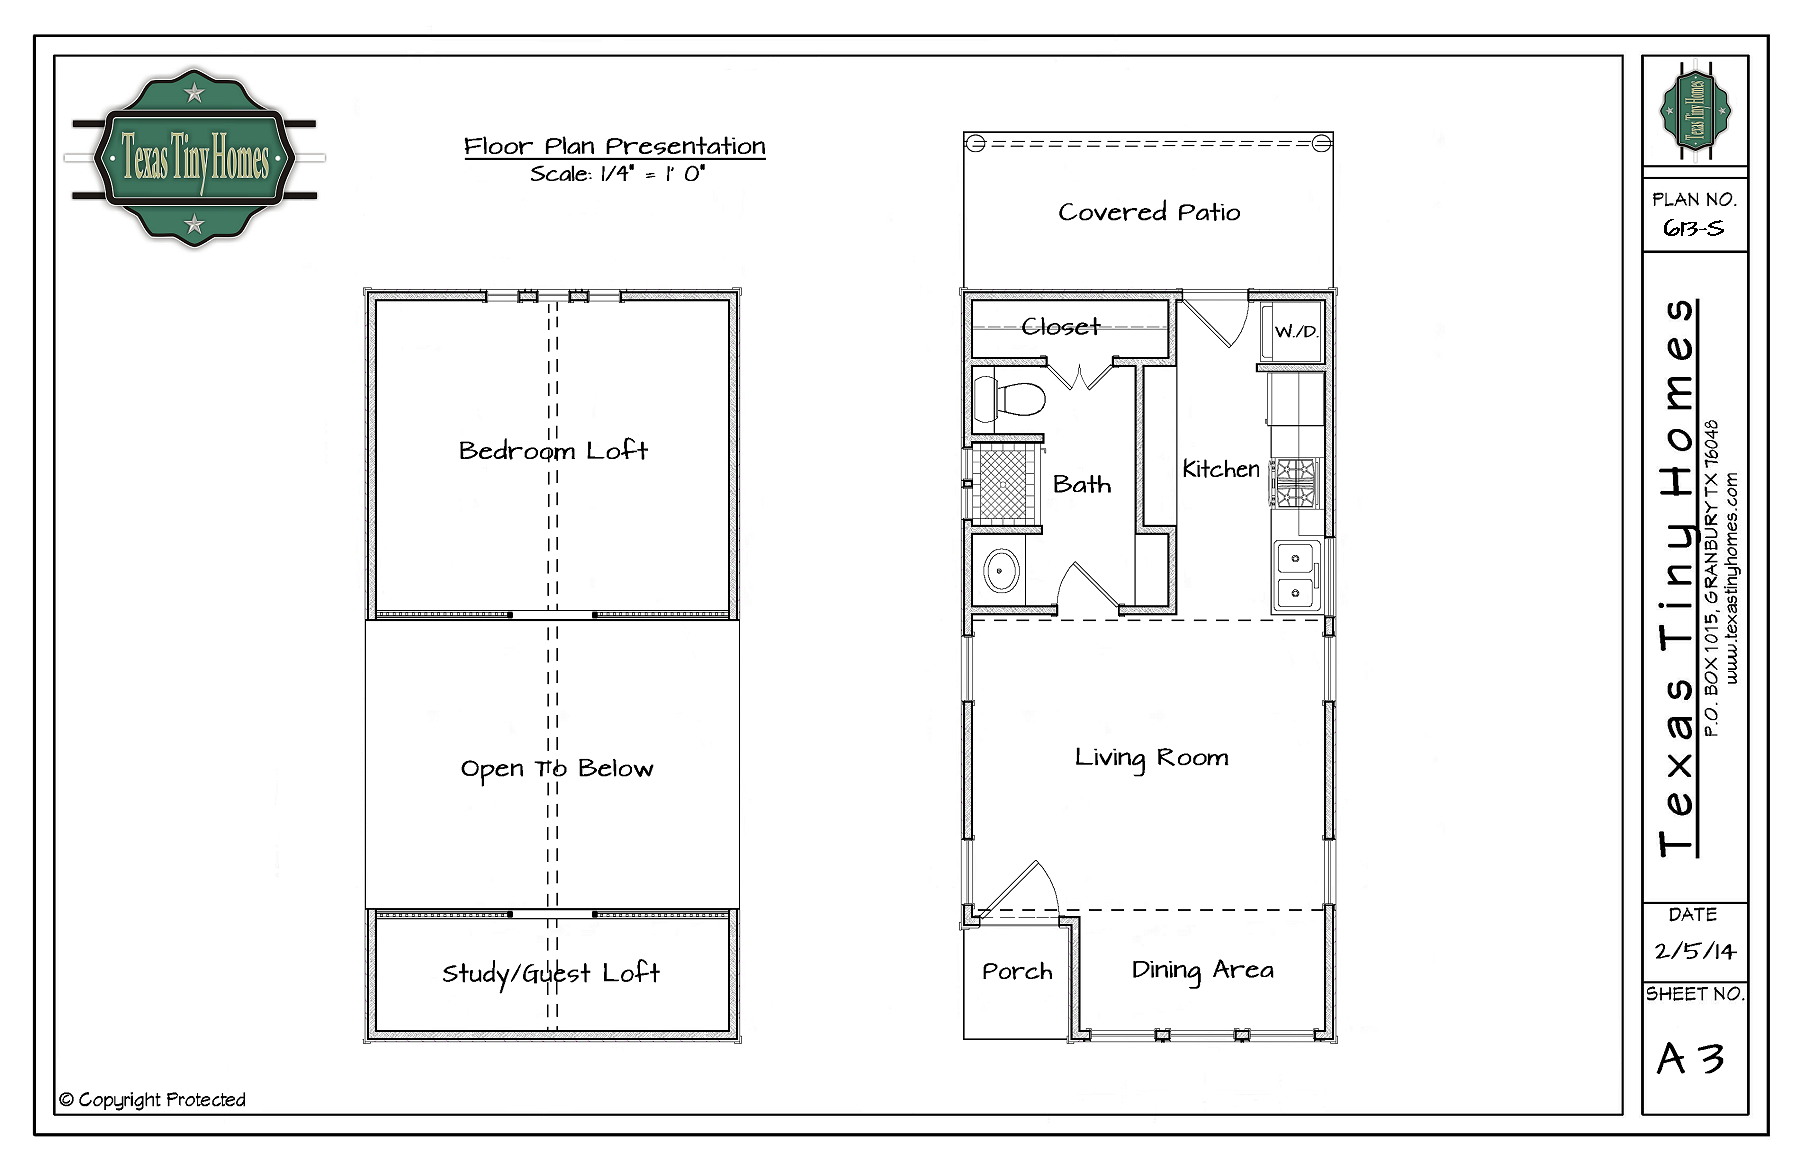 Mansions Floor Plans Plan 613 S